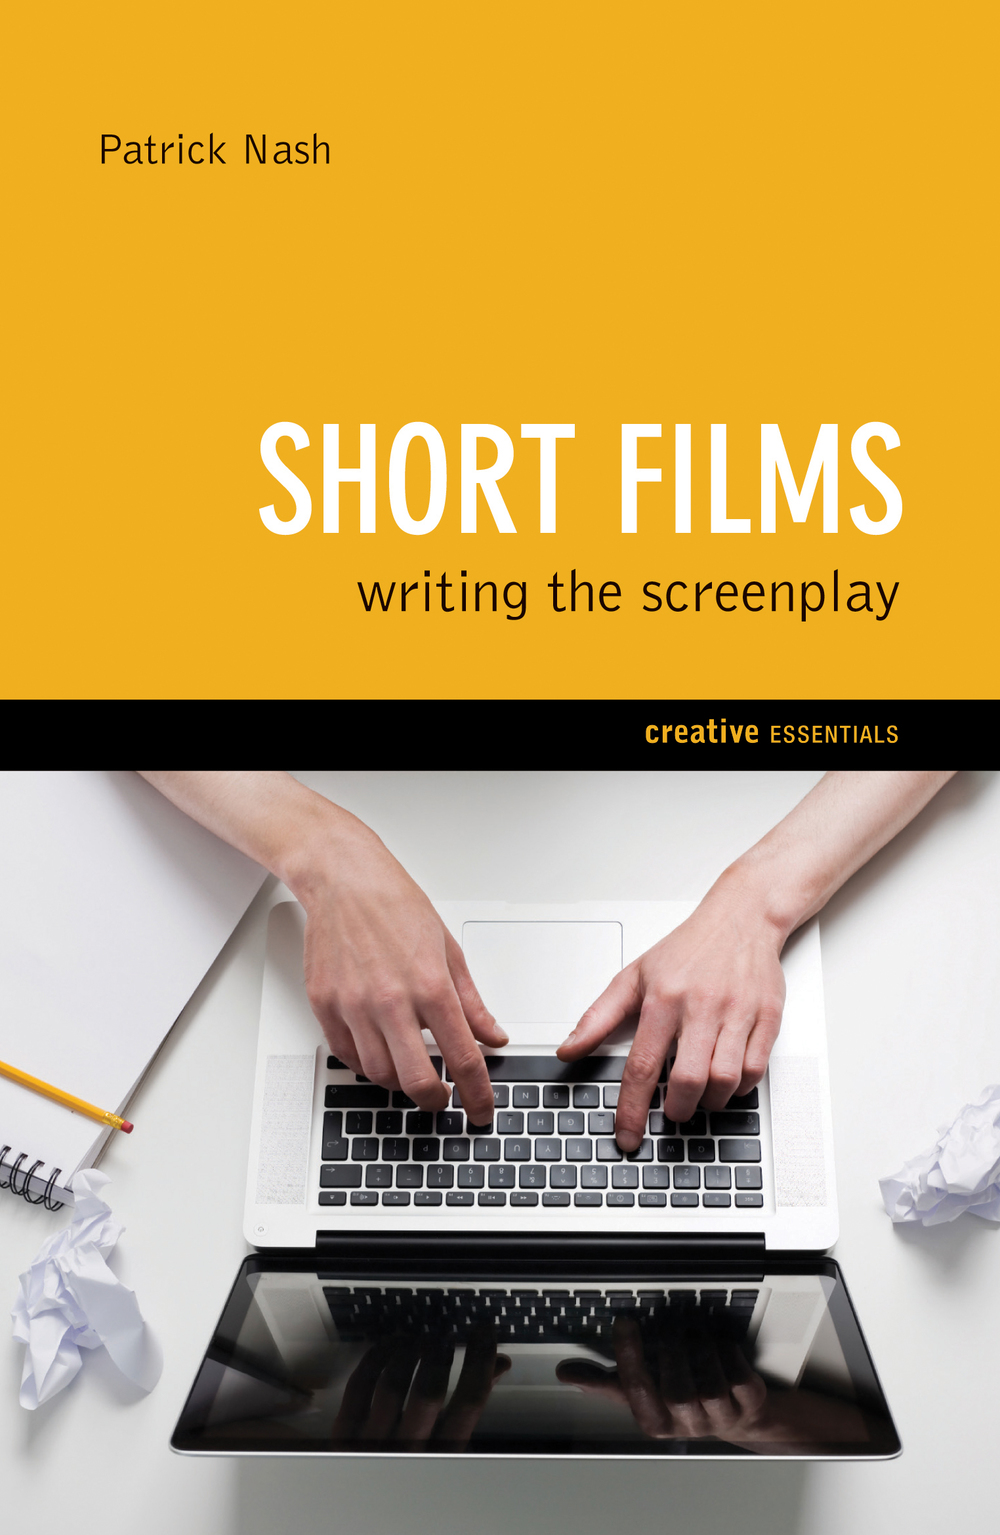 SHORT FILMS: WRITING THE SCREENPLAY Non-fiction (Screenwriting) 192 pages Oldcastle Books - June 2012 A complete guide to short film screenplays, from finding and developing that exciting idea to information on the technical revolution in digital filmmaking and distribution.